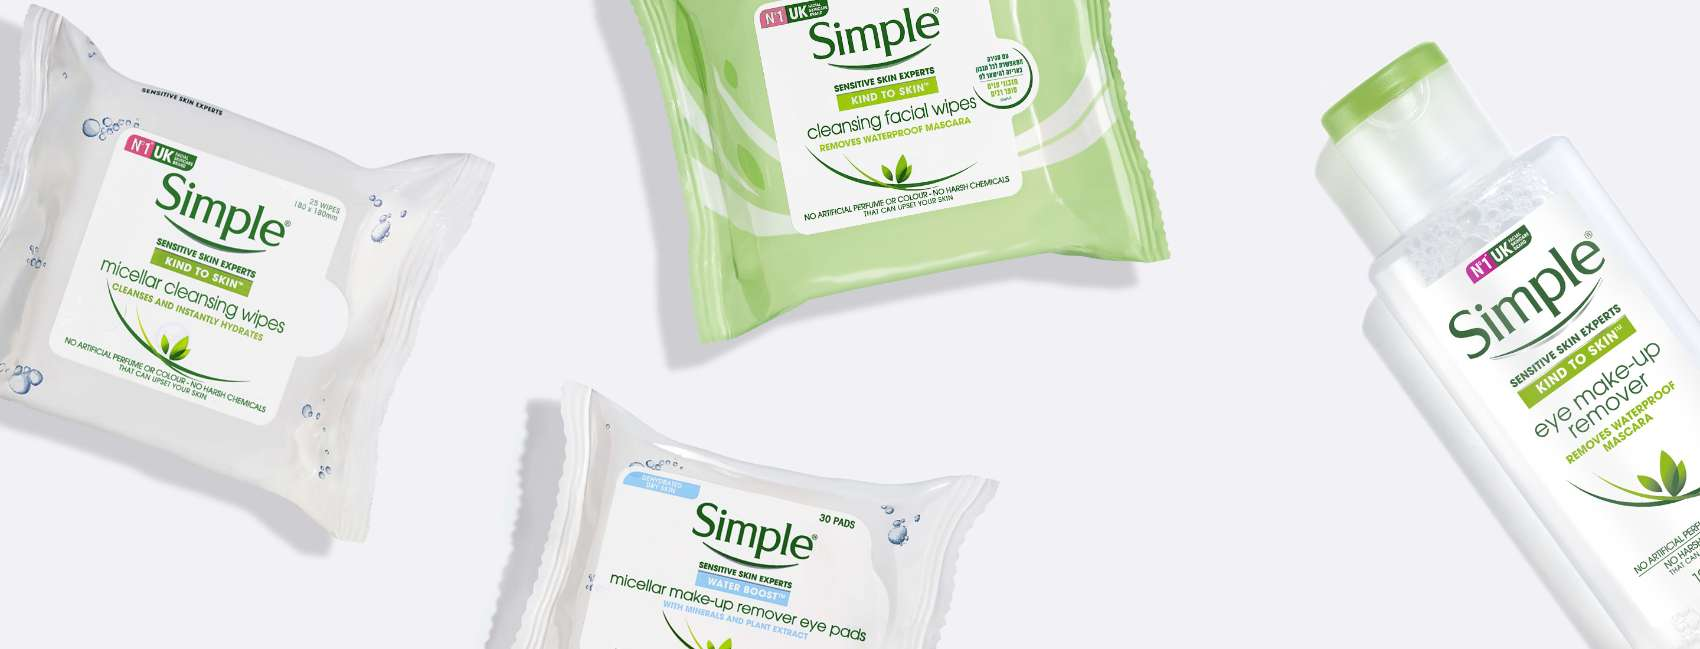 A flat lay of four Simple facial cleansing wipes